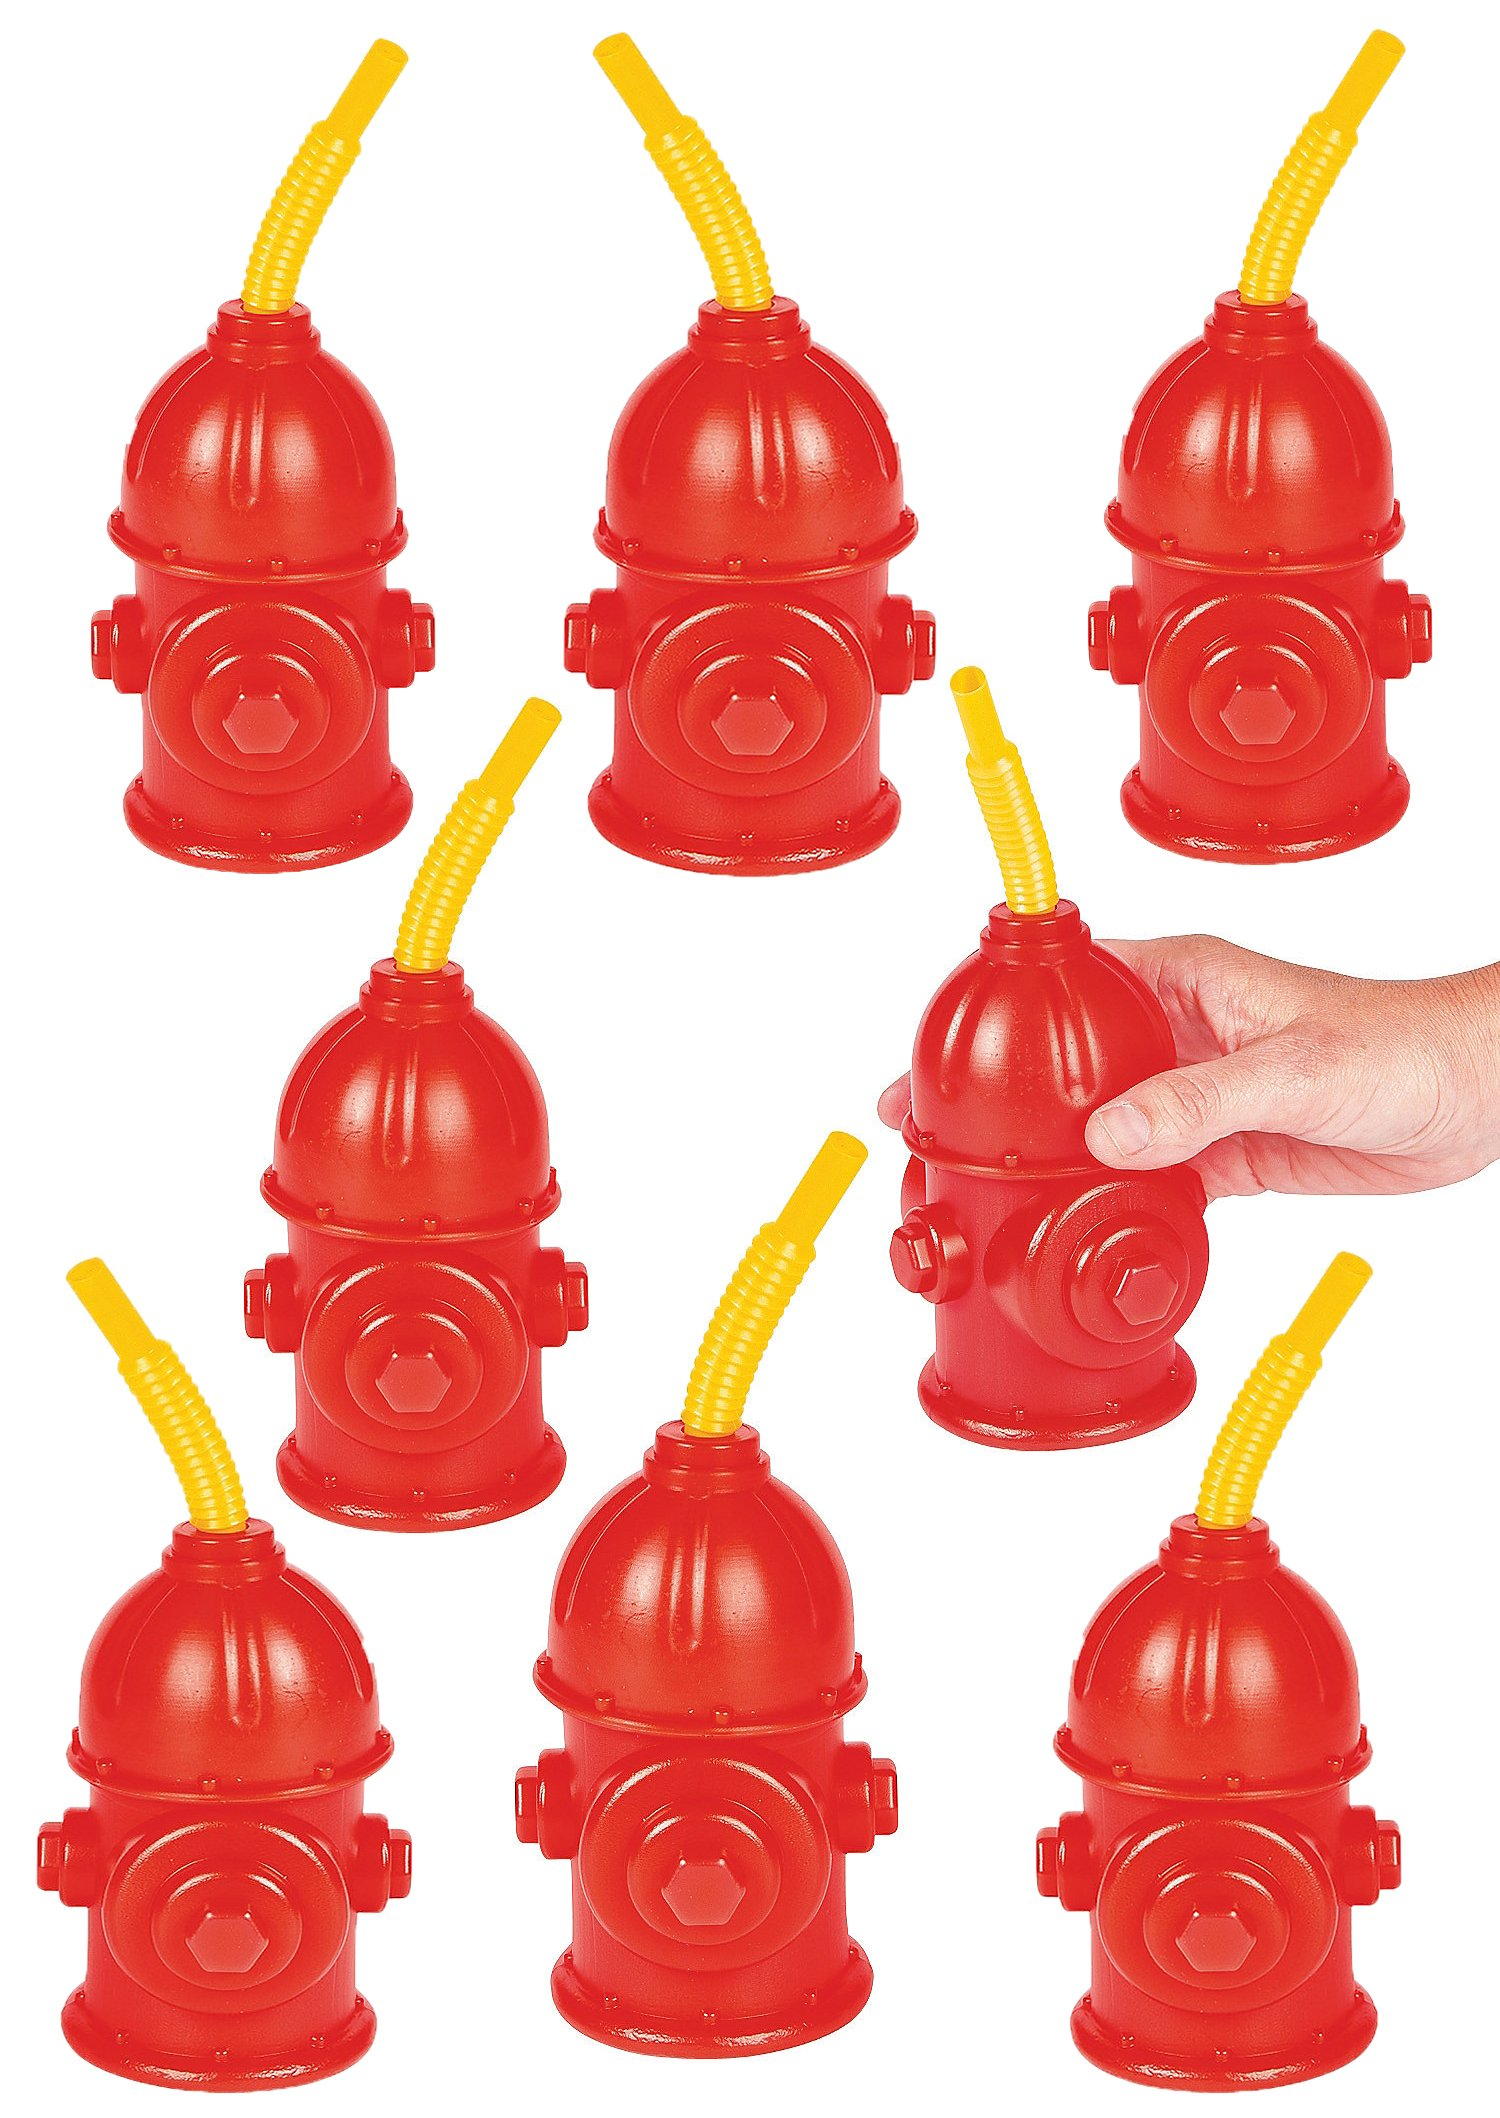 Firefighter Birthday Party Favors Supplies For Kids - Pack of 8 - Fire Hydrant Cups With Straws Reusable Plastic Fireman Cups 4'' x 5 1/2'' With 8'' Straws, Holds 9 Oz. By 4E's Novelty by 4E's Novelty